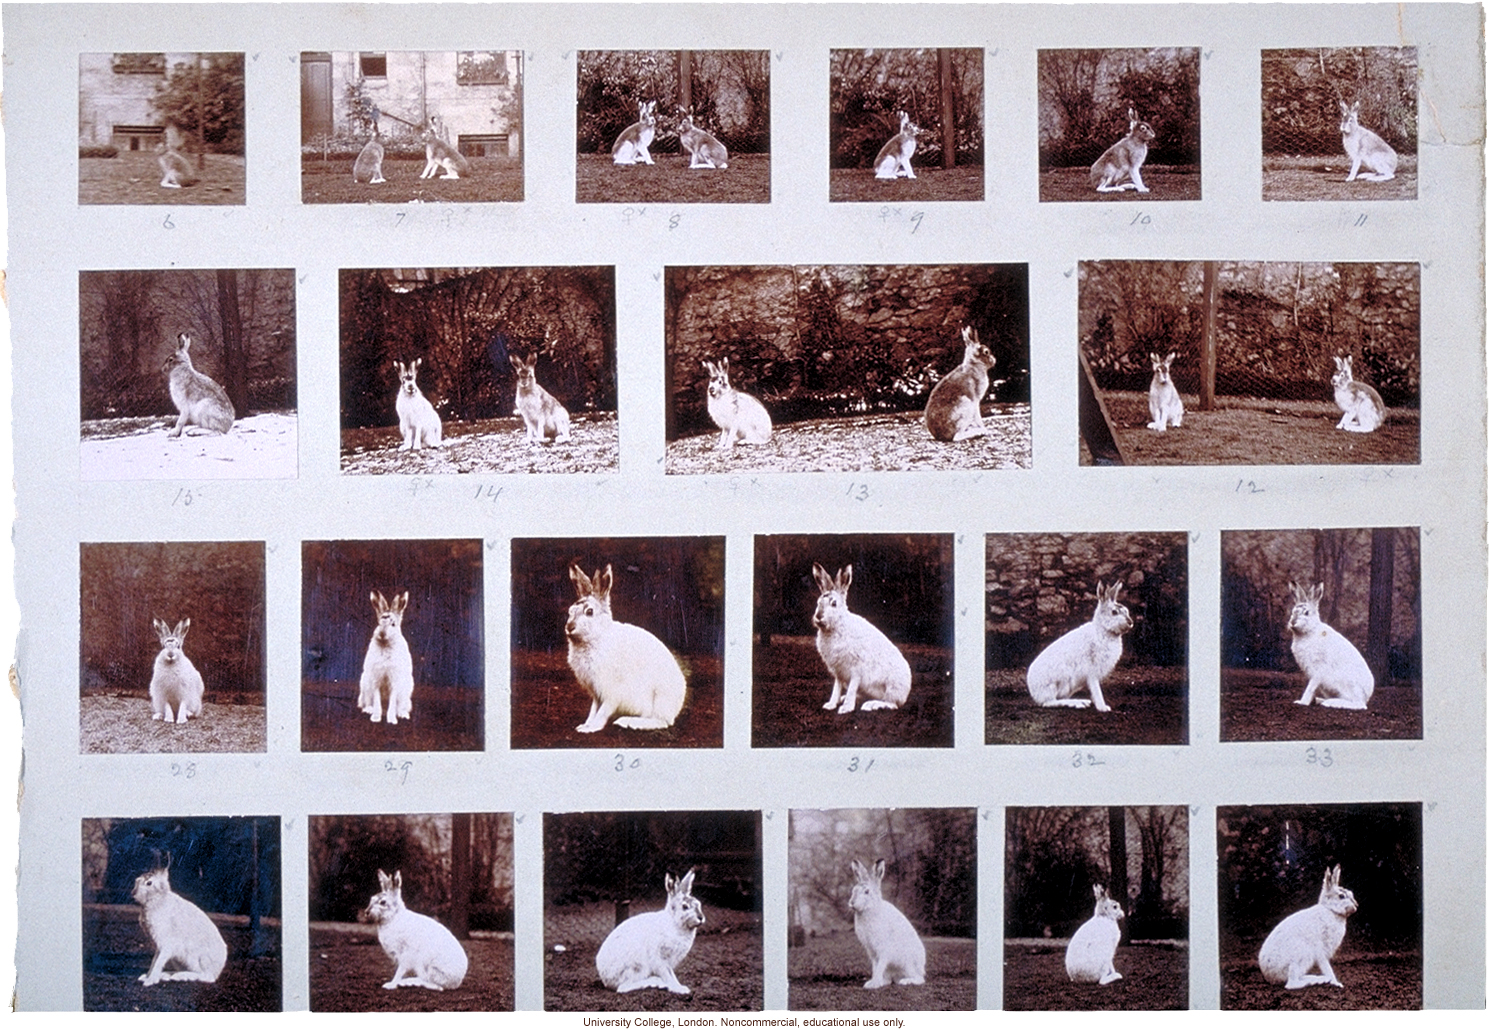 Albino hares, for publication in &quote;Albinism in Man,&quote; by K. Pearson, E. Nettleship, and C.H. Usher (1911)